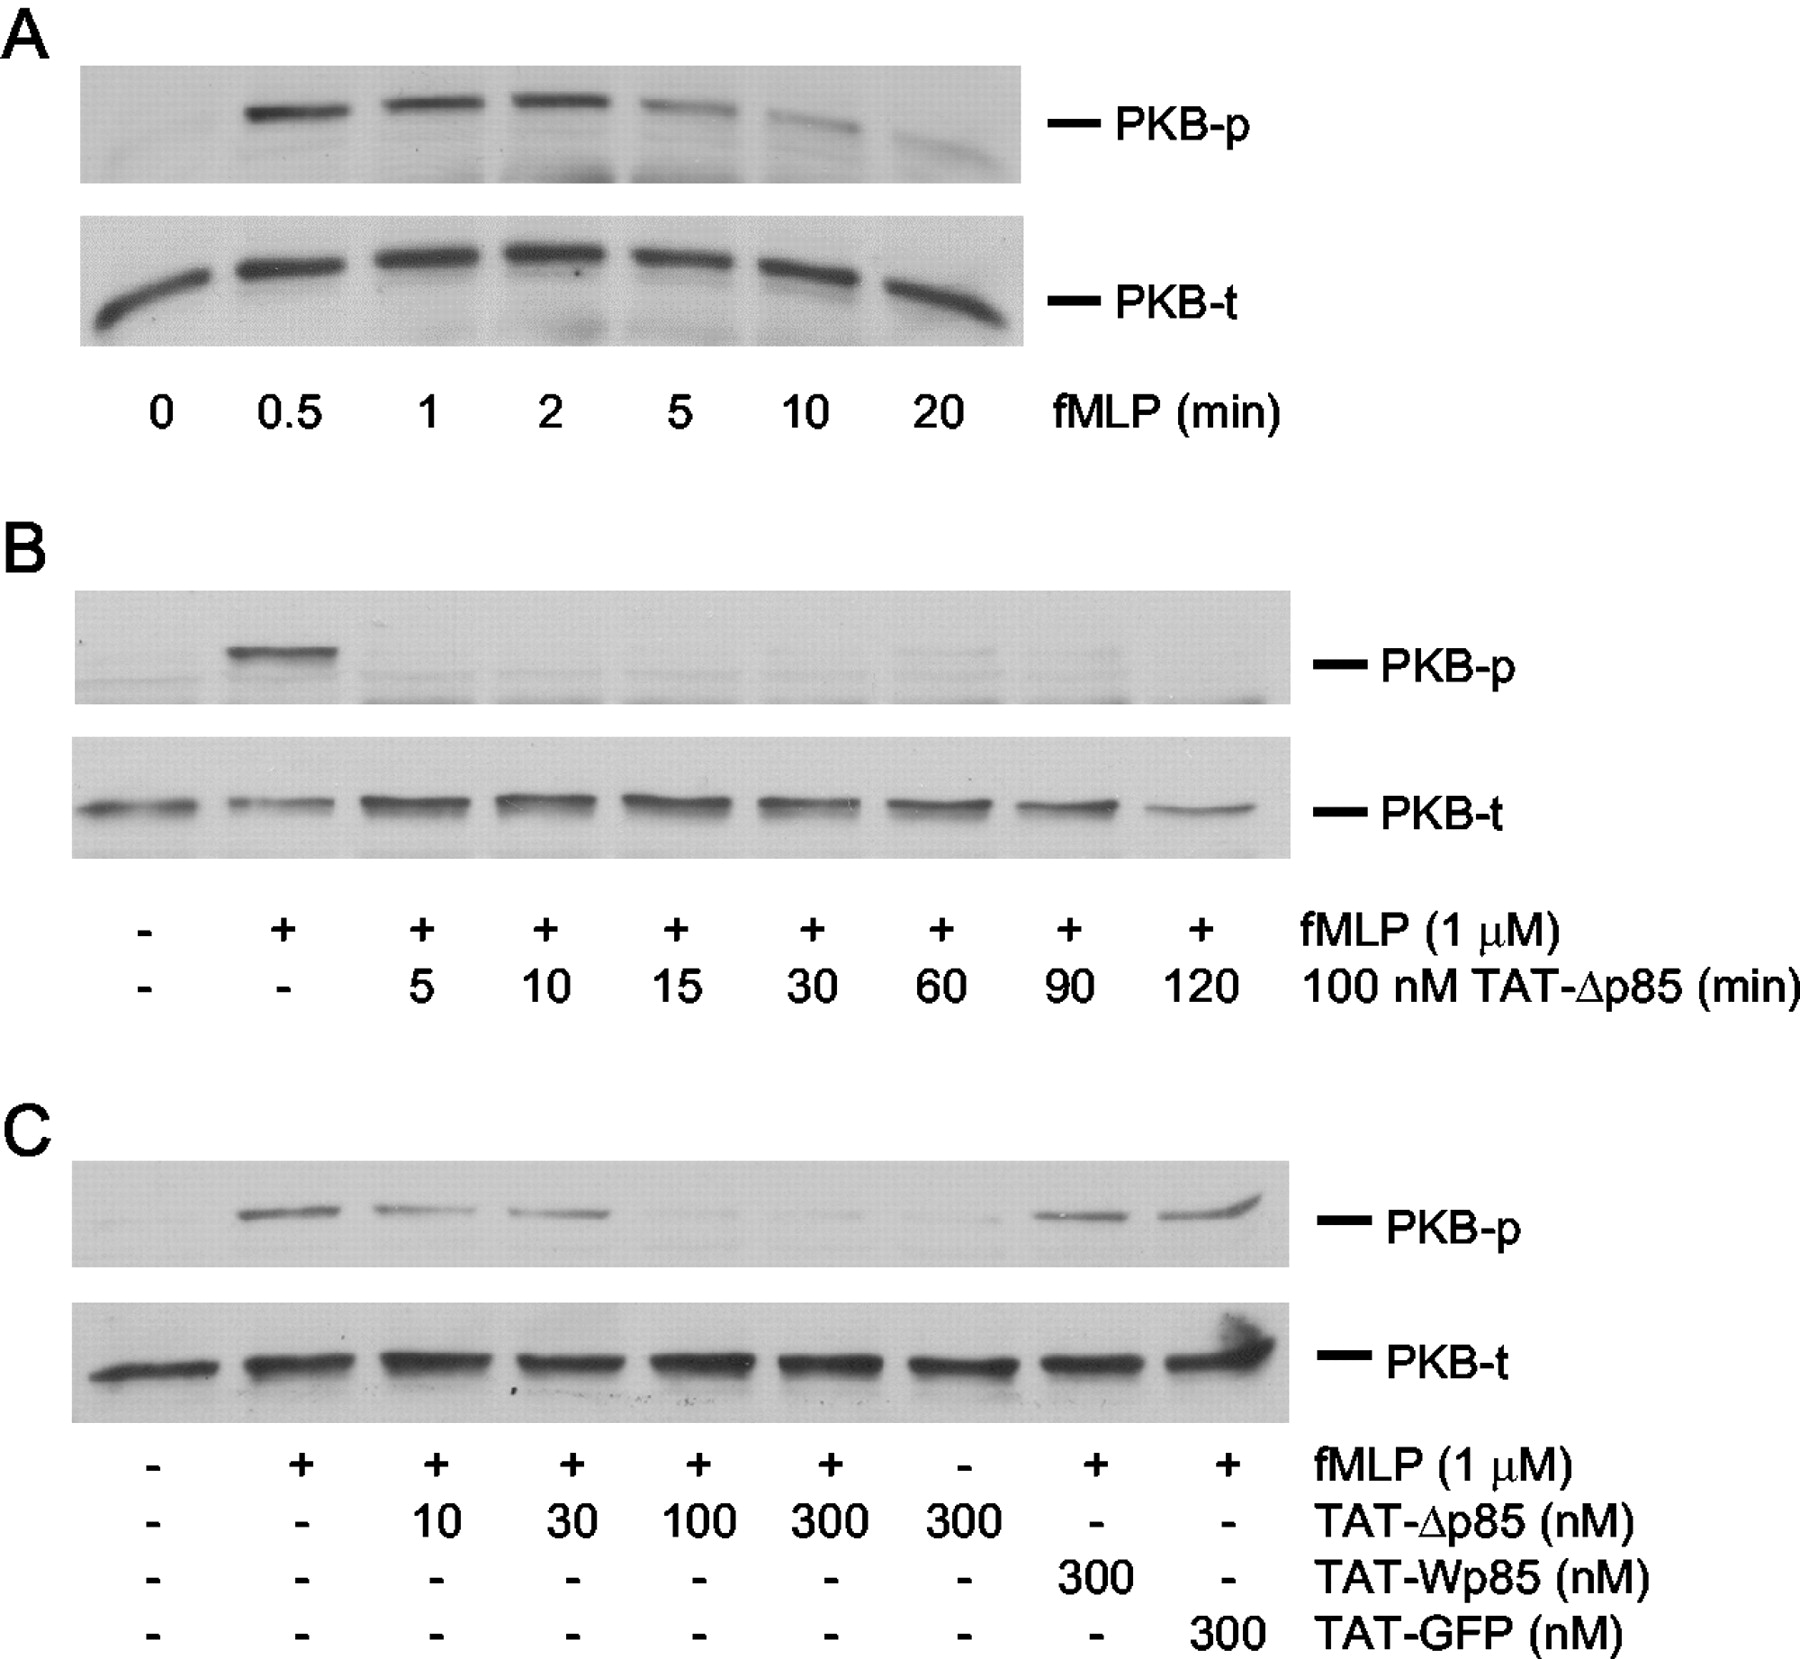 Activation of Group IV Cytosolic Phospholipase A2 in Human